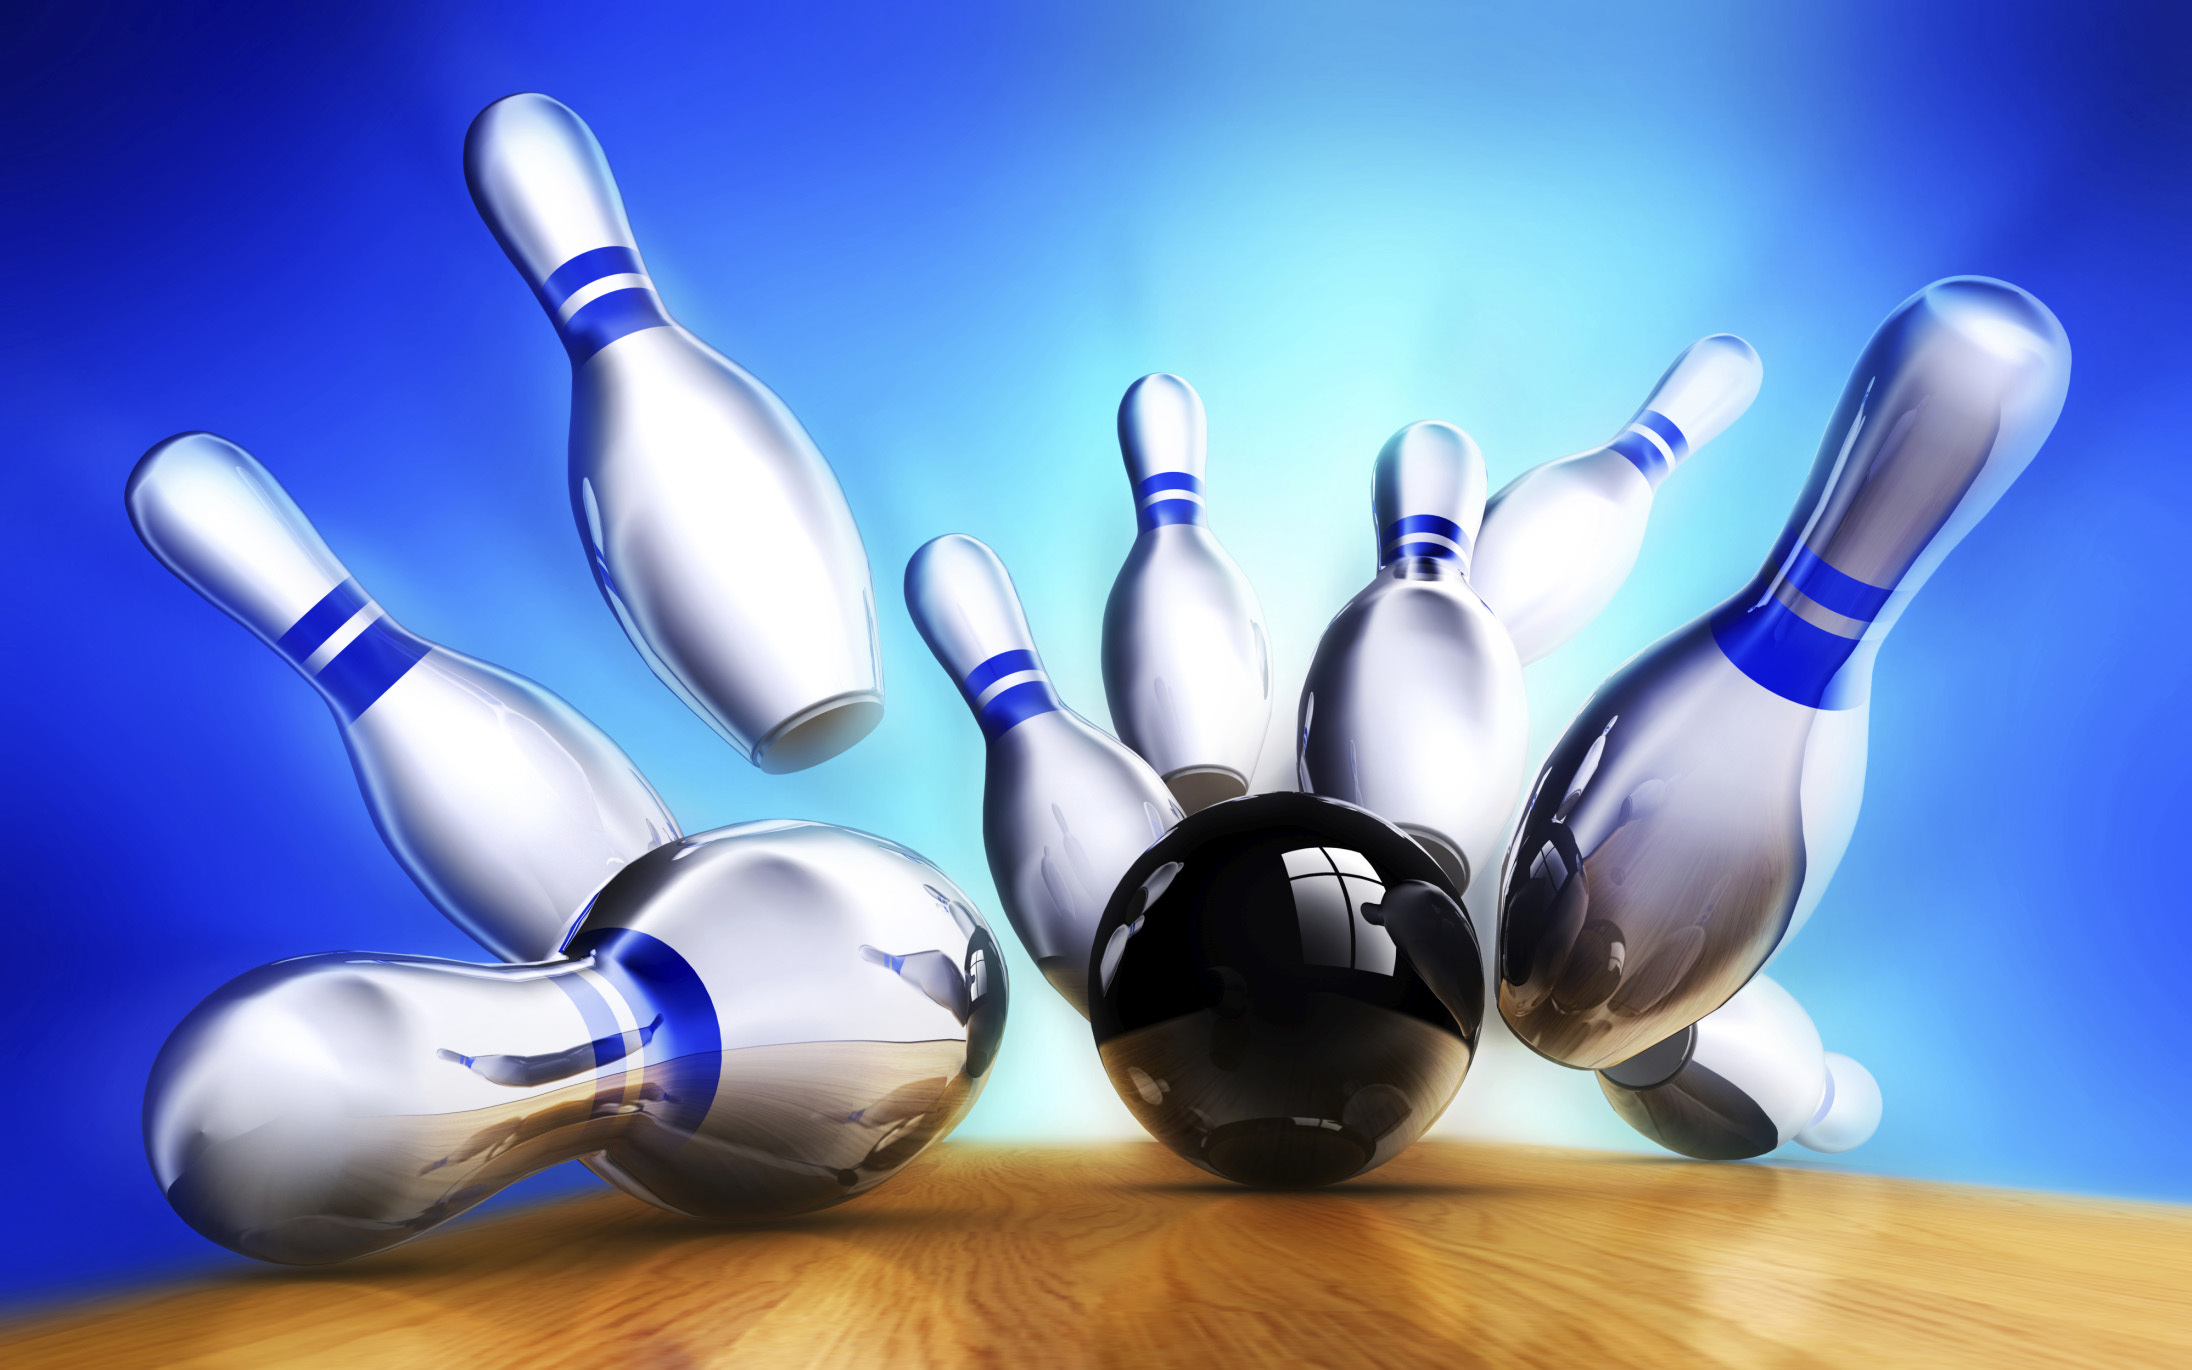 2192x1370 - Bowling Wallpapers 2